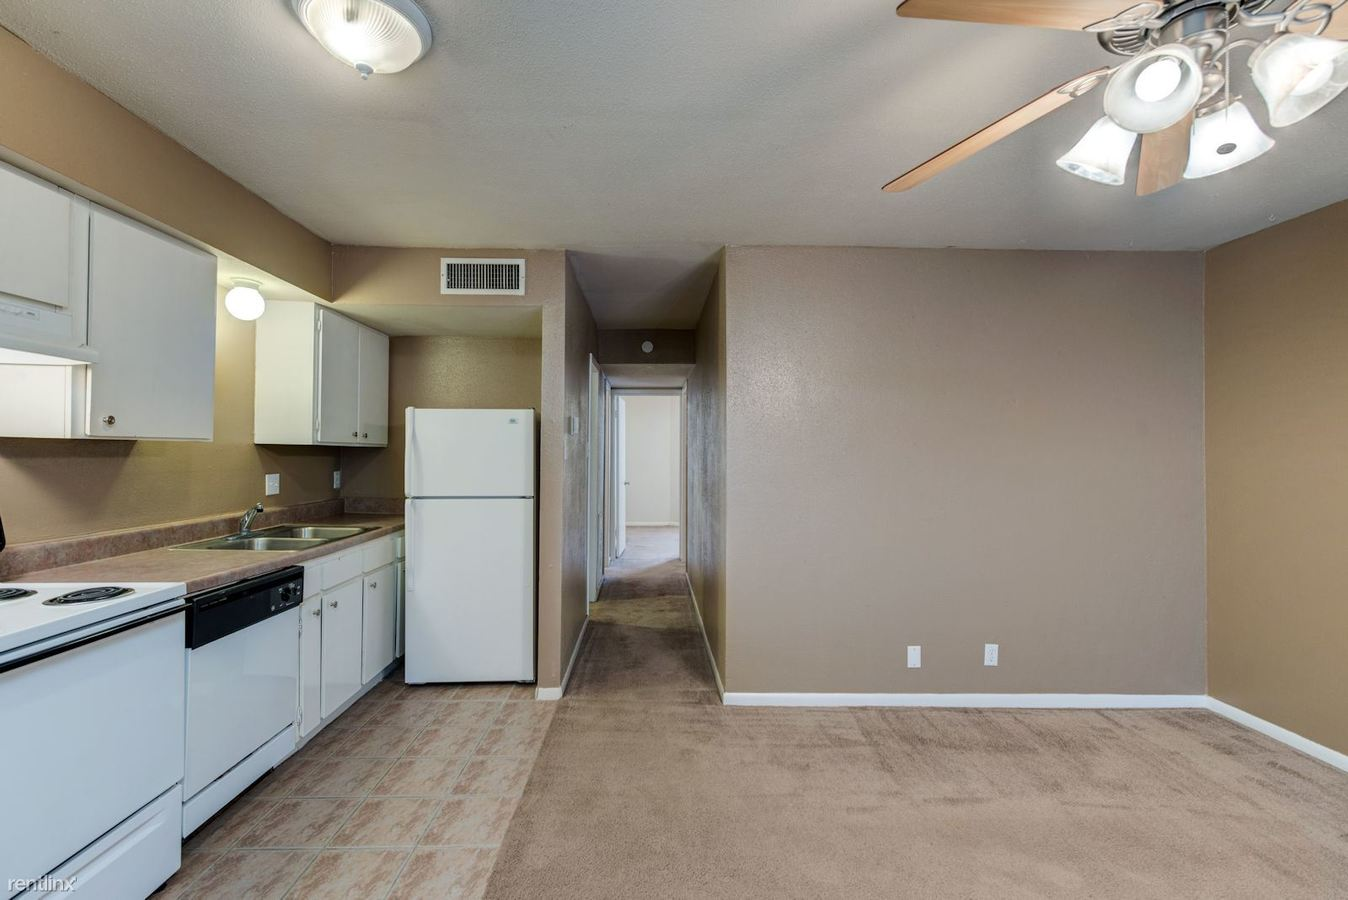 1 Bedroom 1 Bathroom Apartment for rent at Academic Village in Bryan, TX